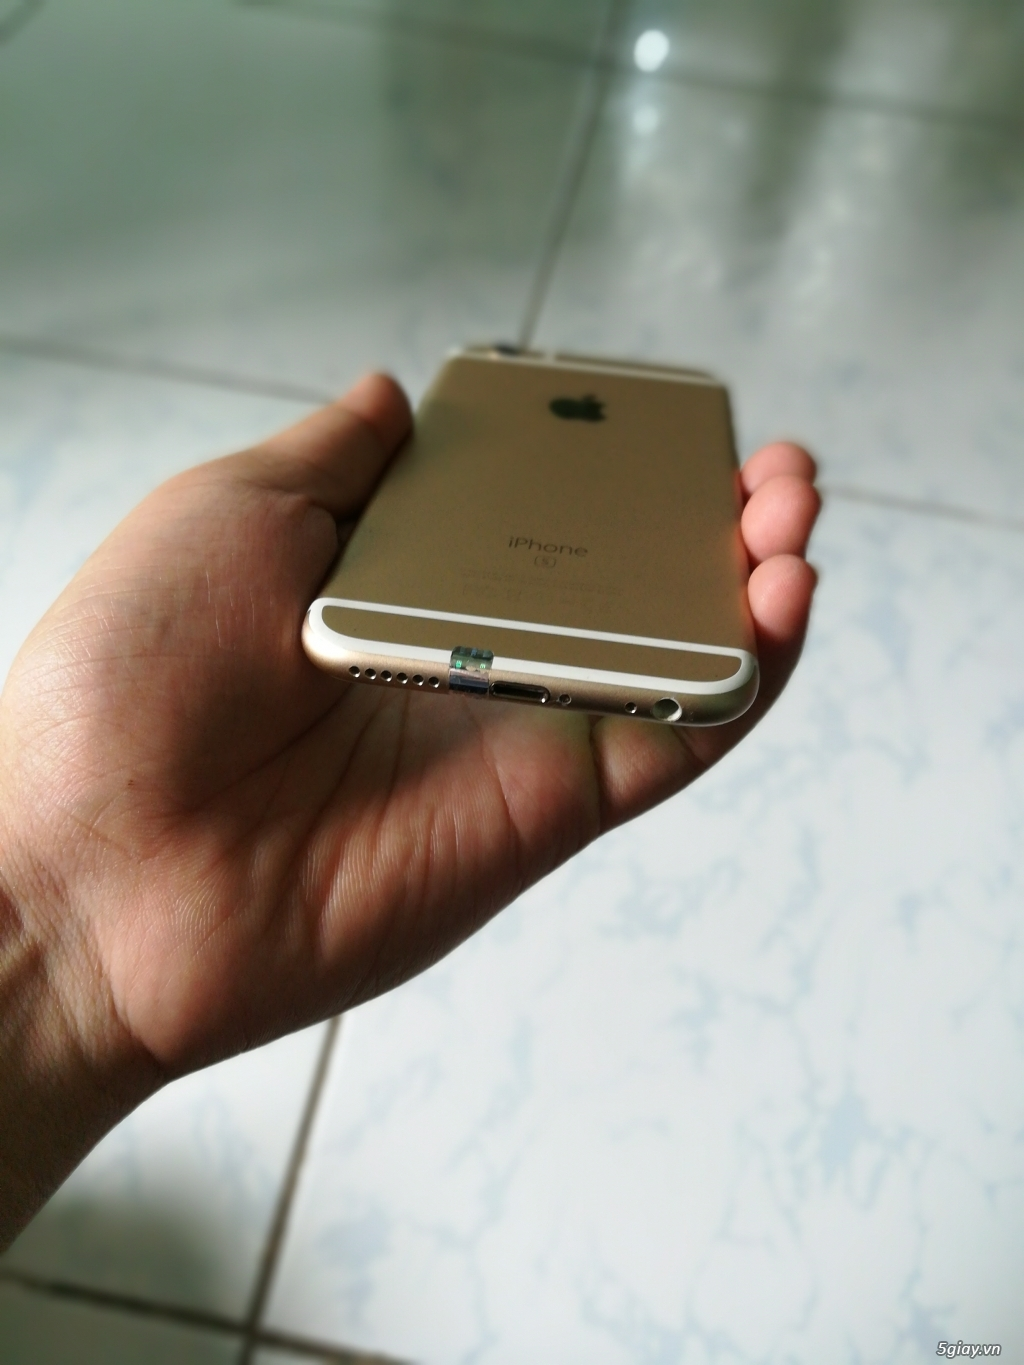 IPHONE 6S LOCK GOLD 64GB LIKENEW - 1